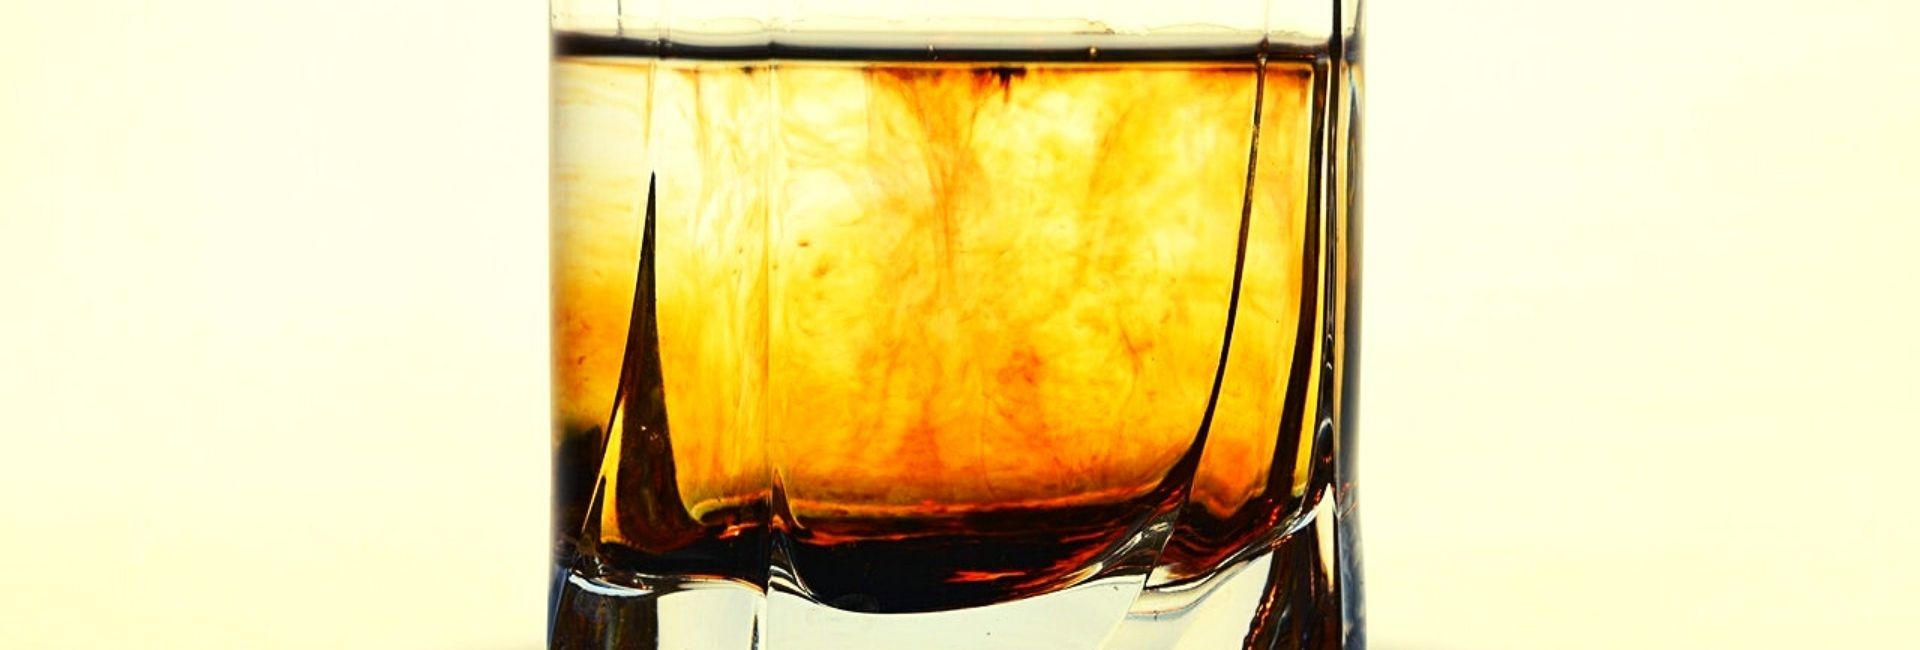 Blended Whiskey: Types, the history & more